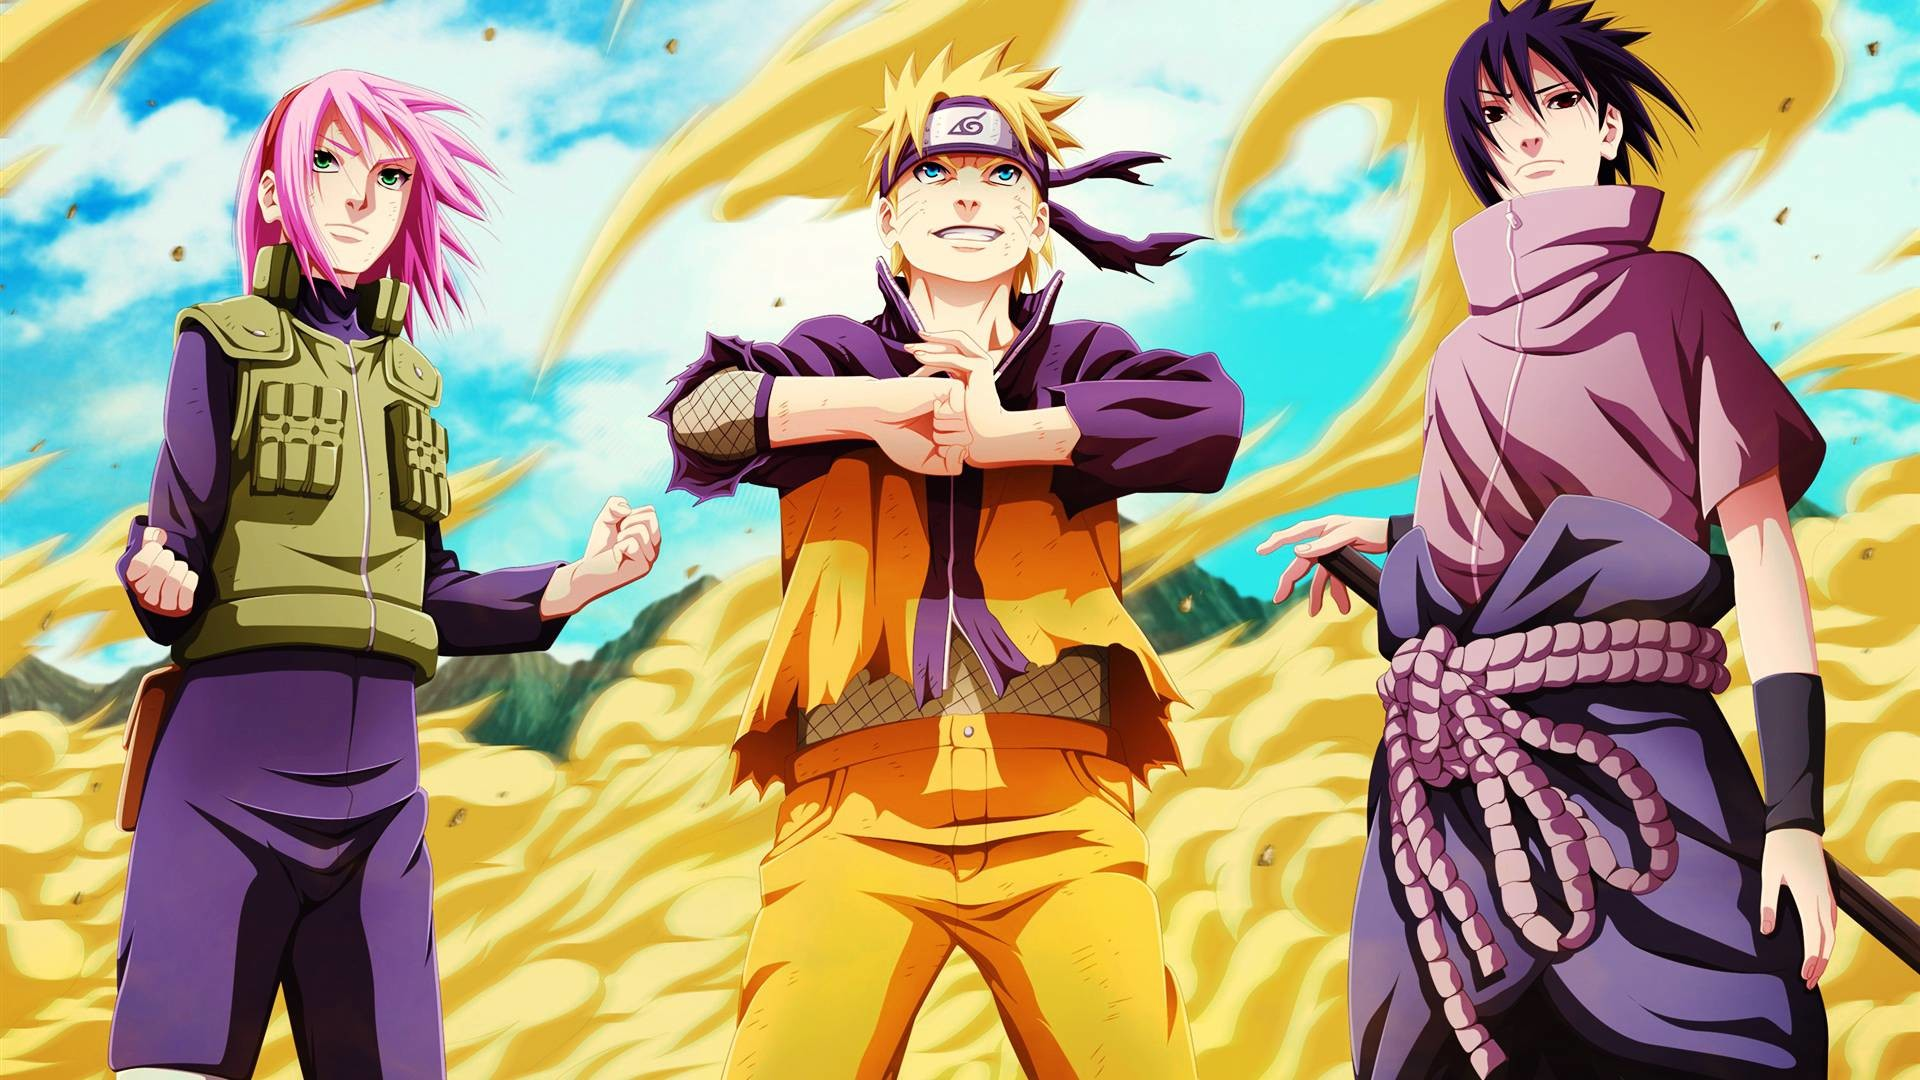 1920x1080 Naruto Sakura Sasuke Team 7 Wallpaper HD #9330 Wallpaper | High .